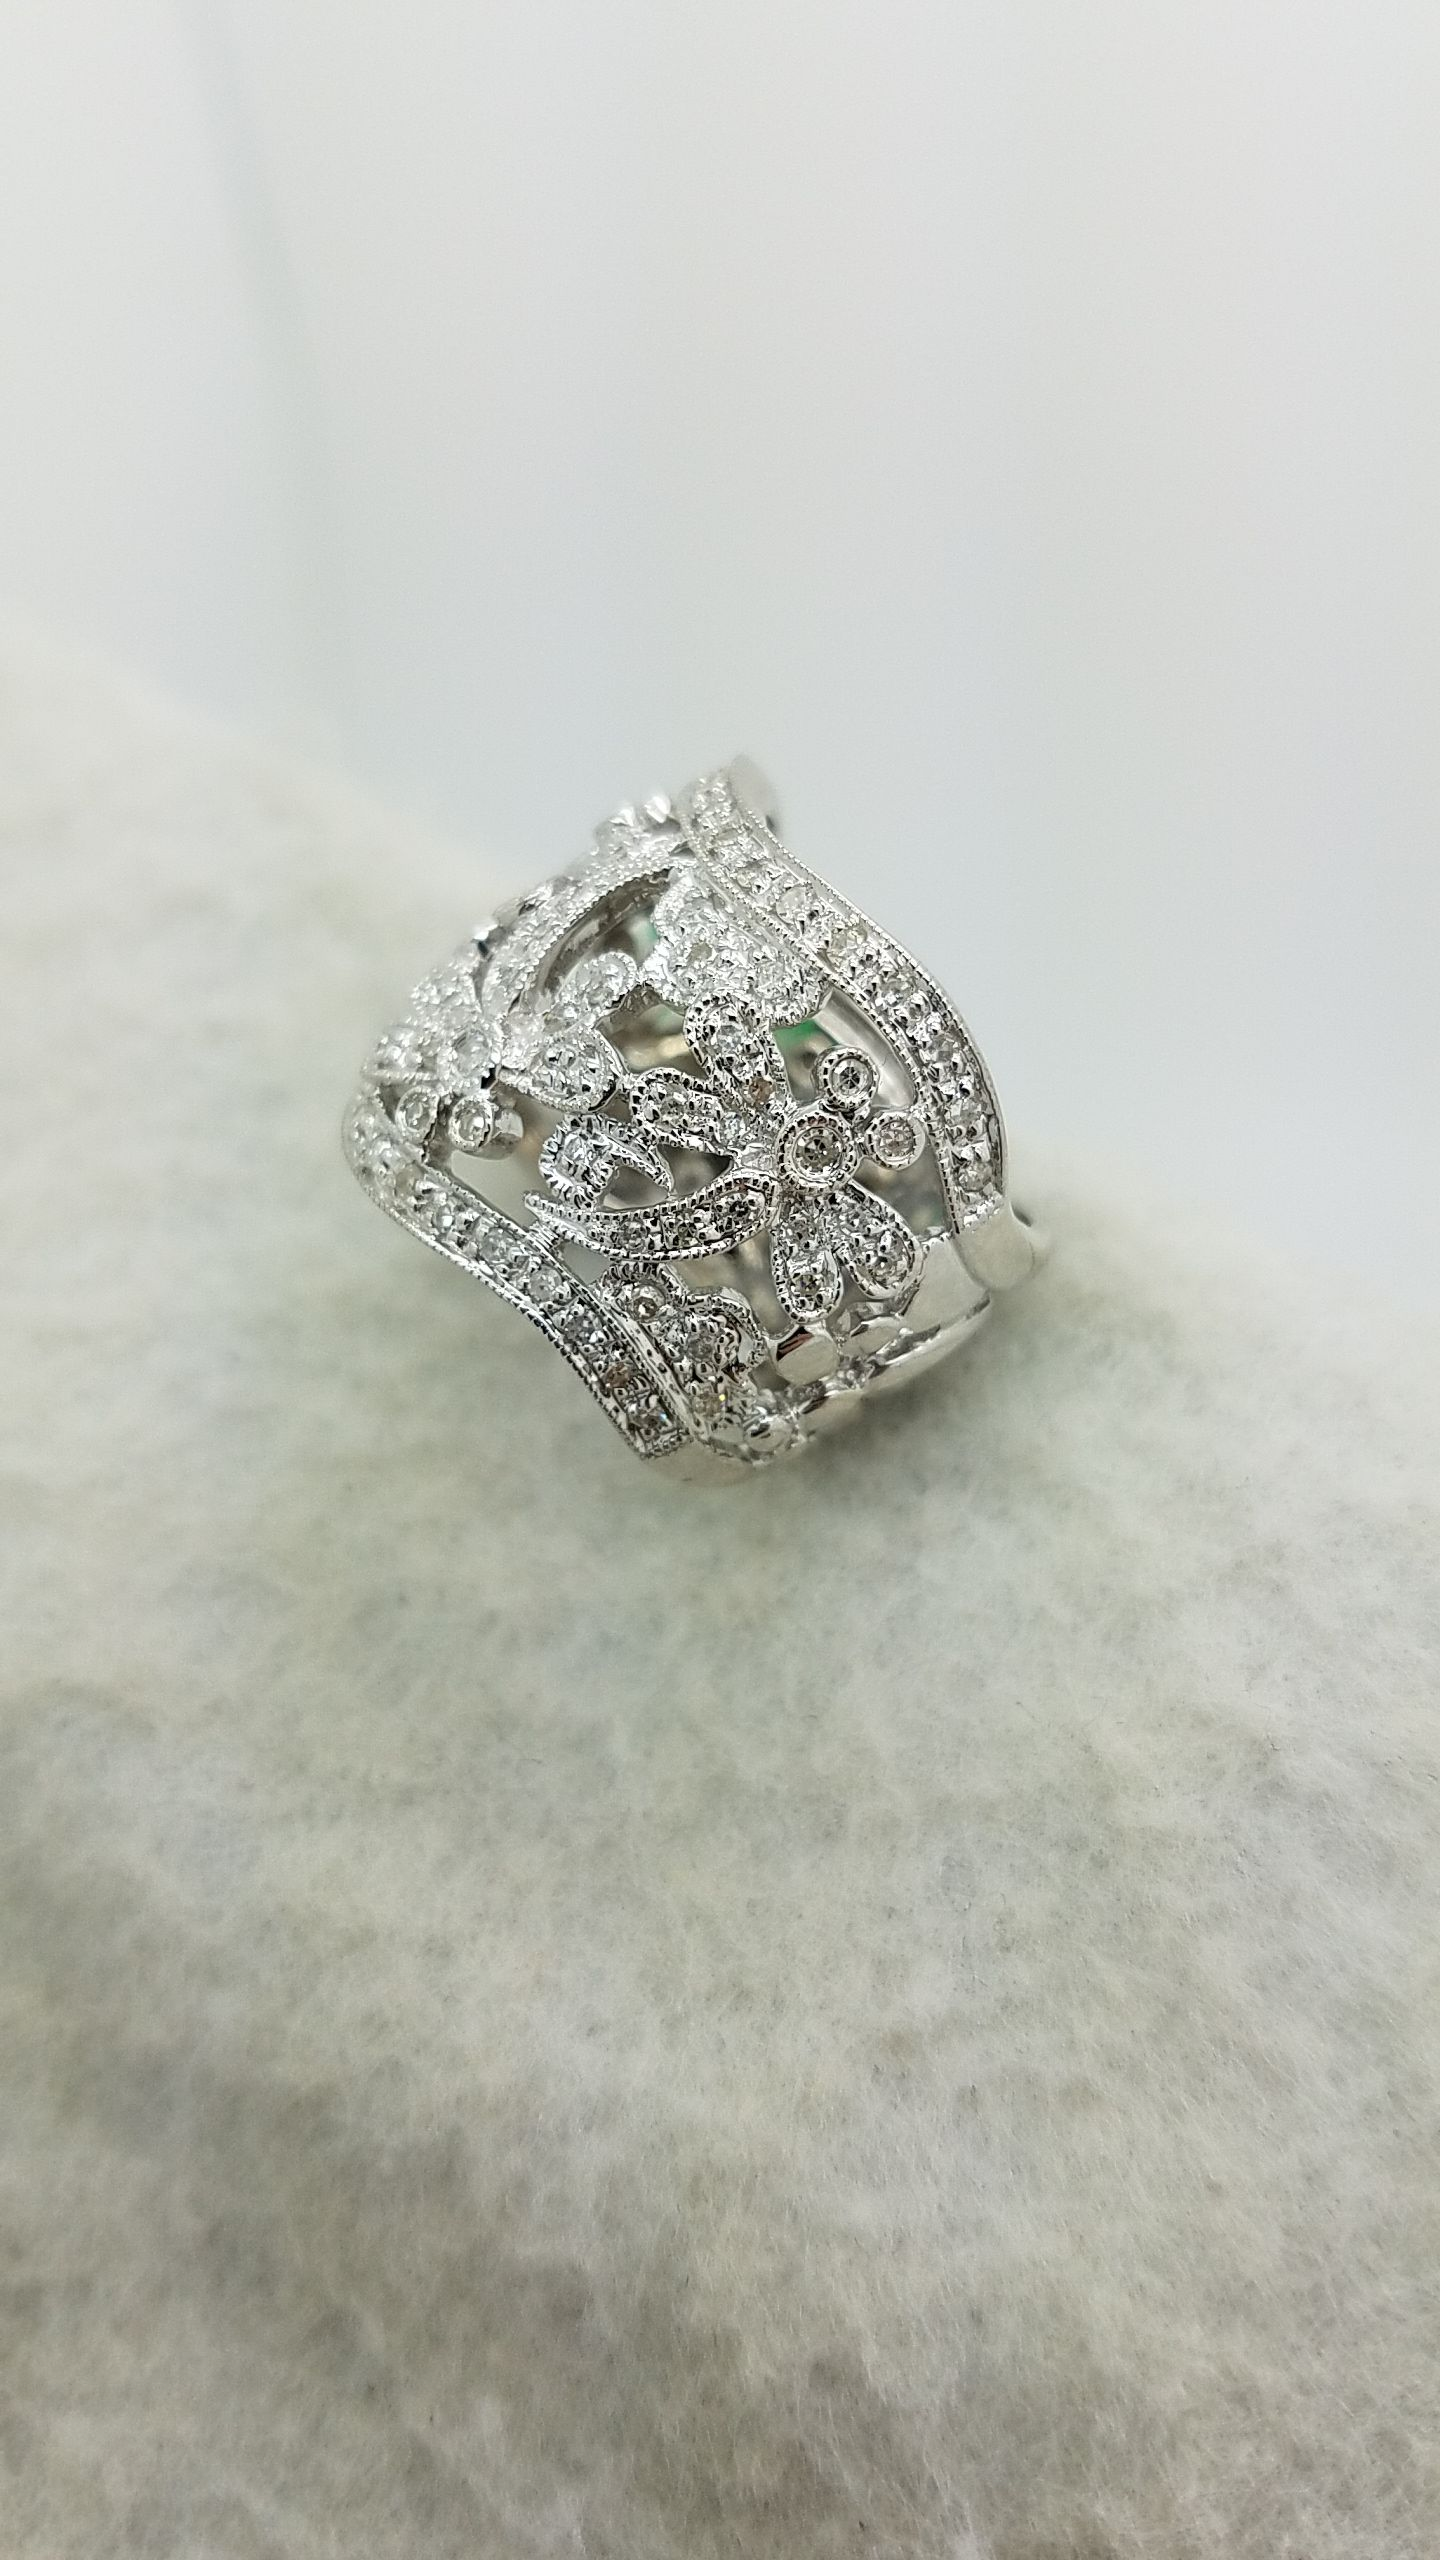 toner in fine overland diamonds jewelry jewelers citrine rings new dragonfly park s silver home engagement sterling york gavriel phillip for pin